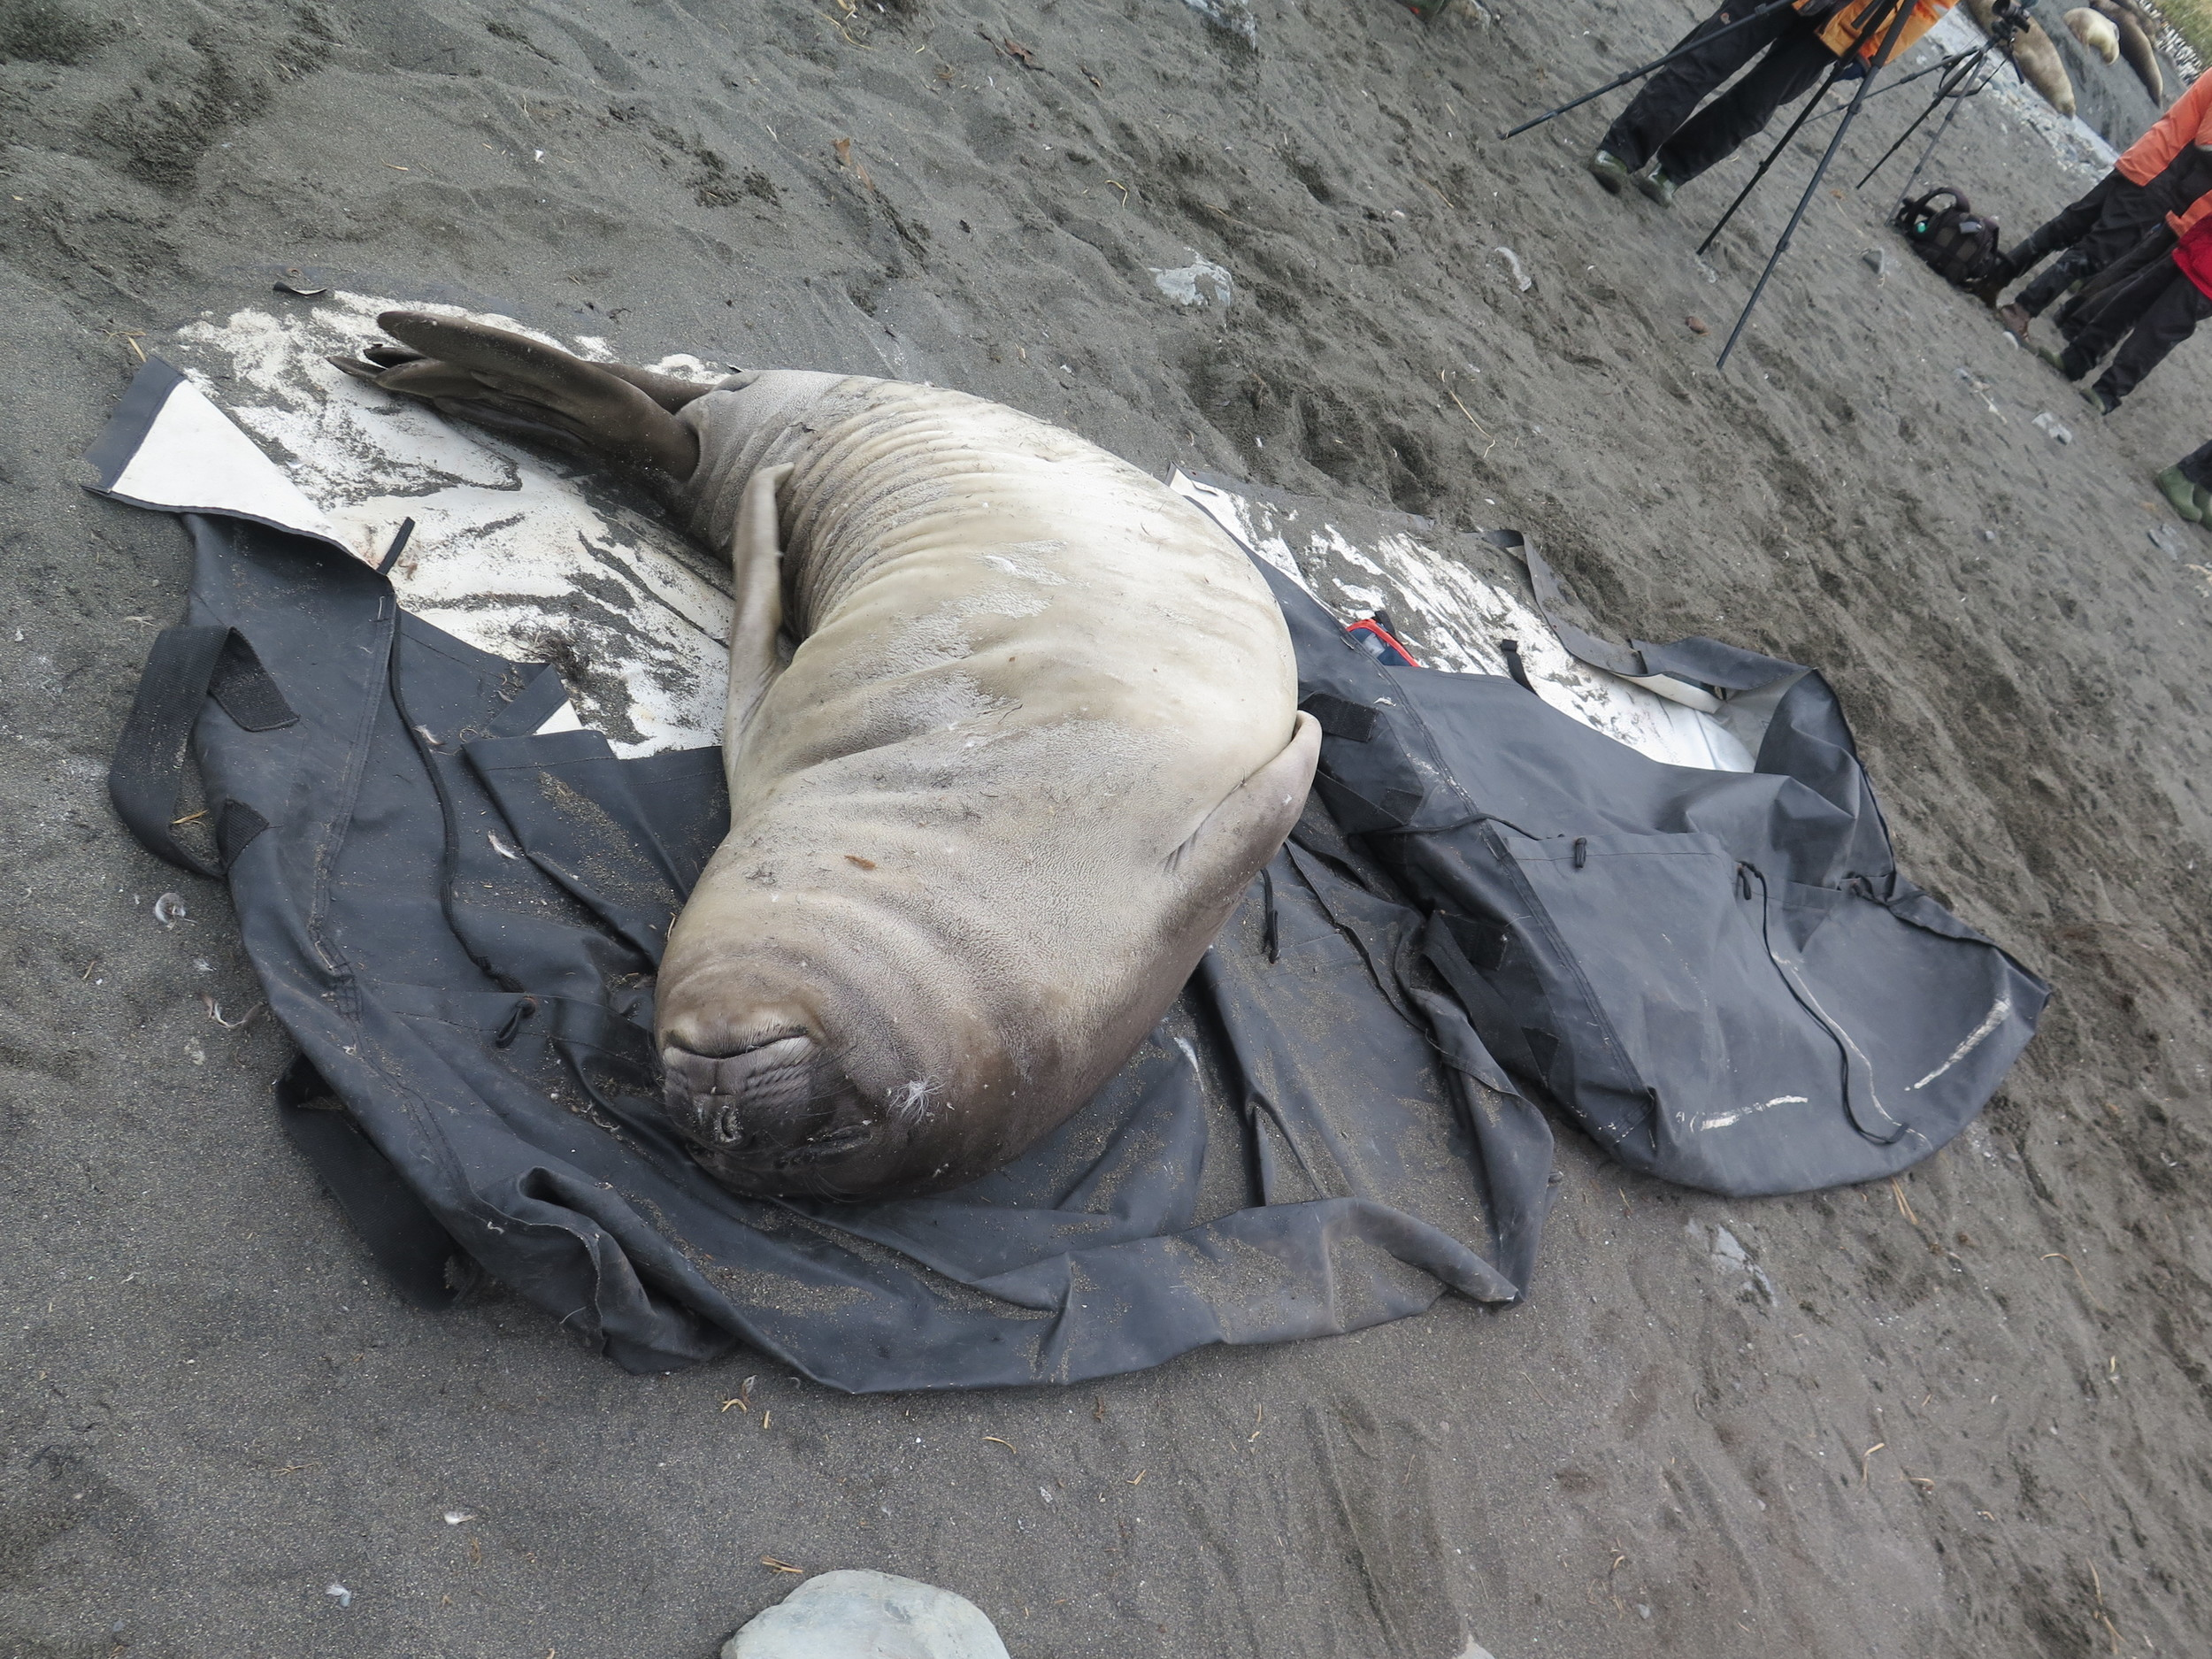 Near the end of the afternoon, a weaner fell asleep on the tarp on which our crew members had carried gear; they resisted the temptation to wrap him up and take him back to the ship.